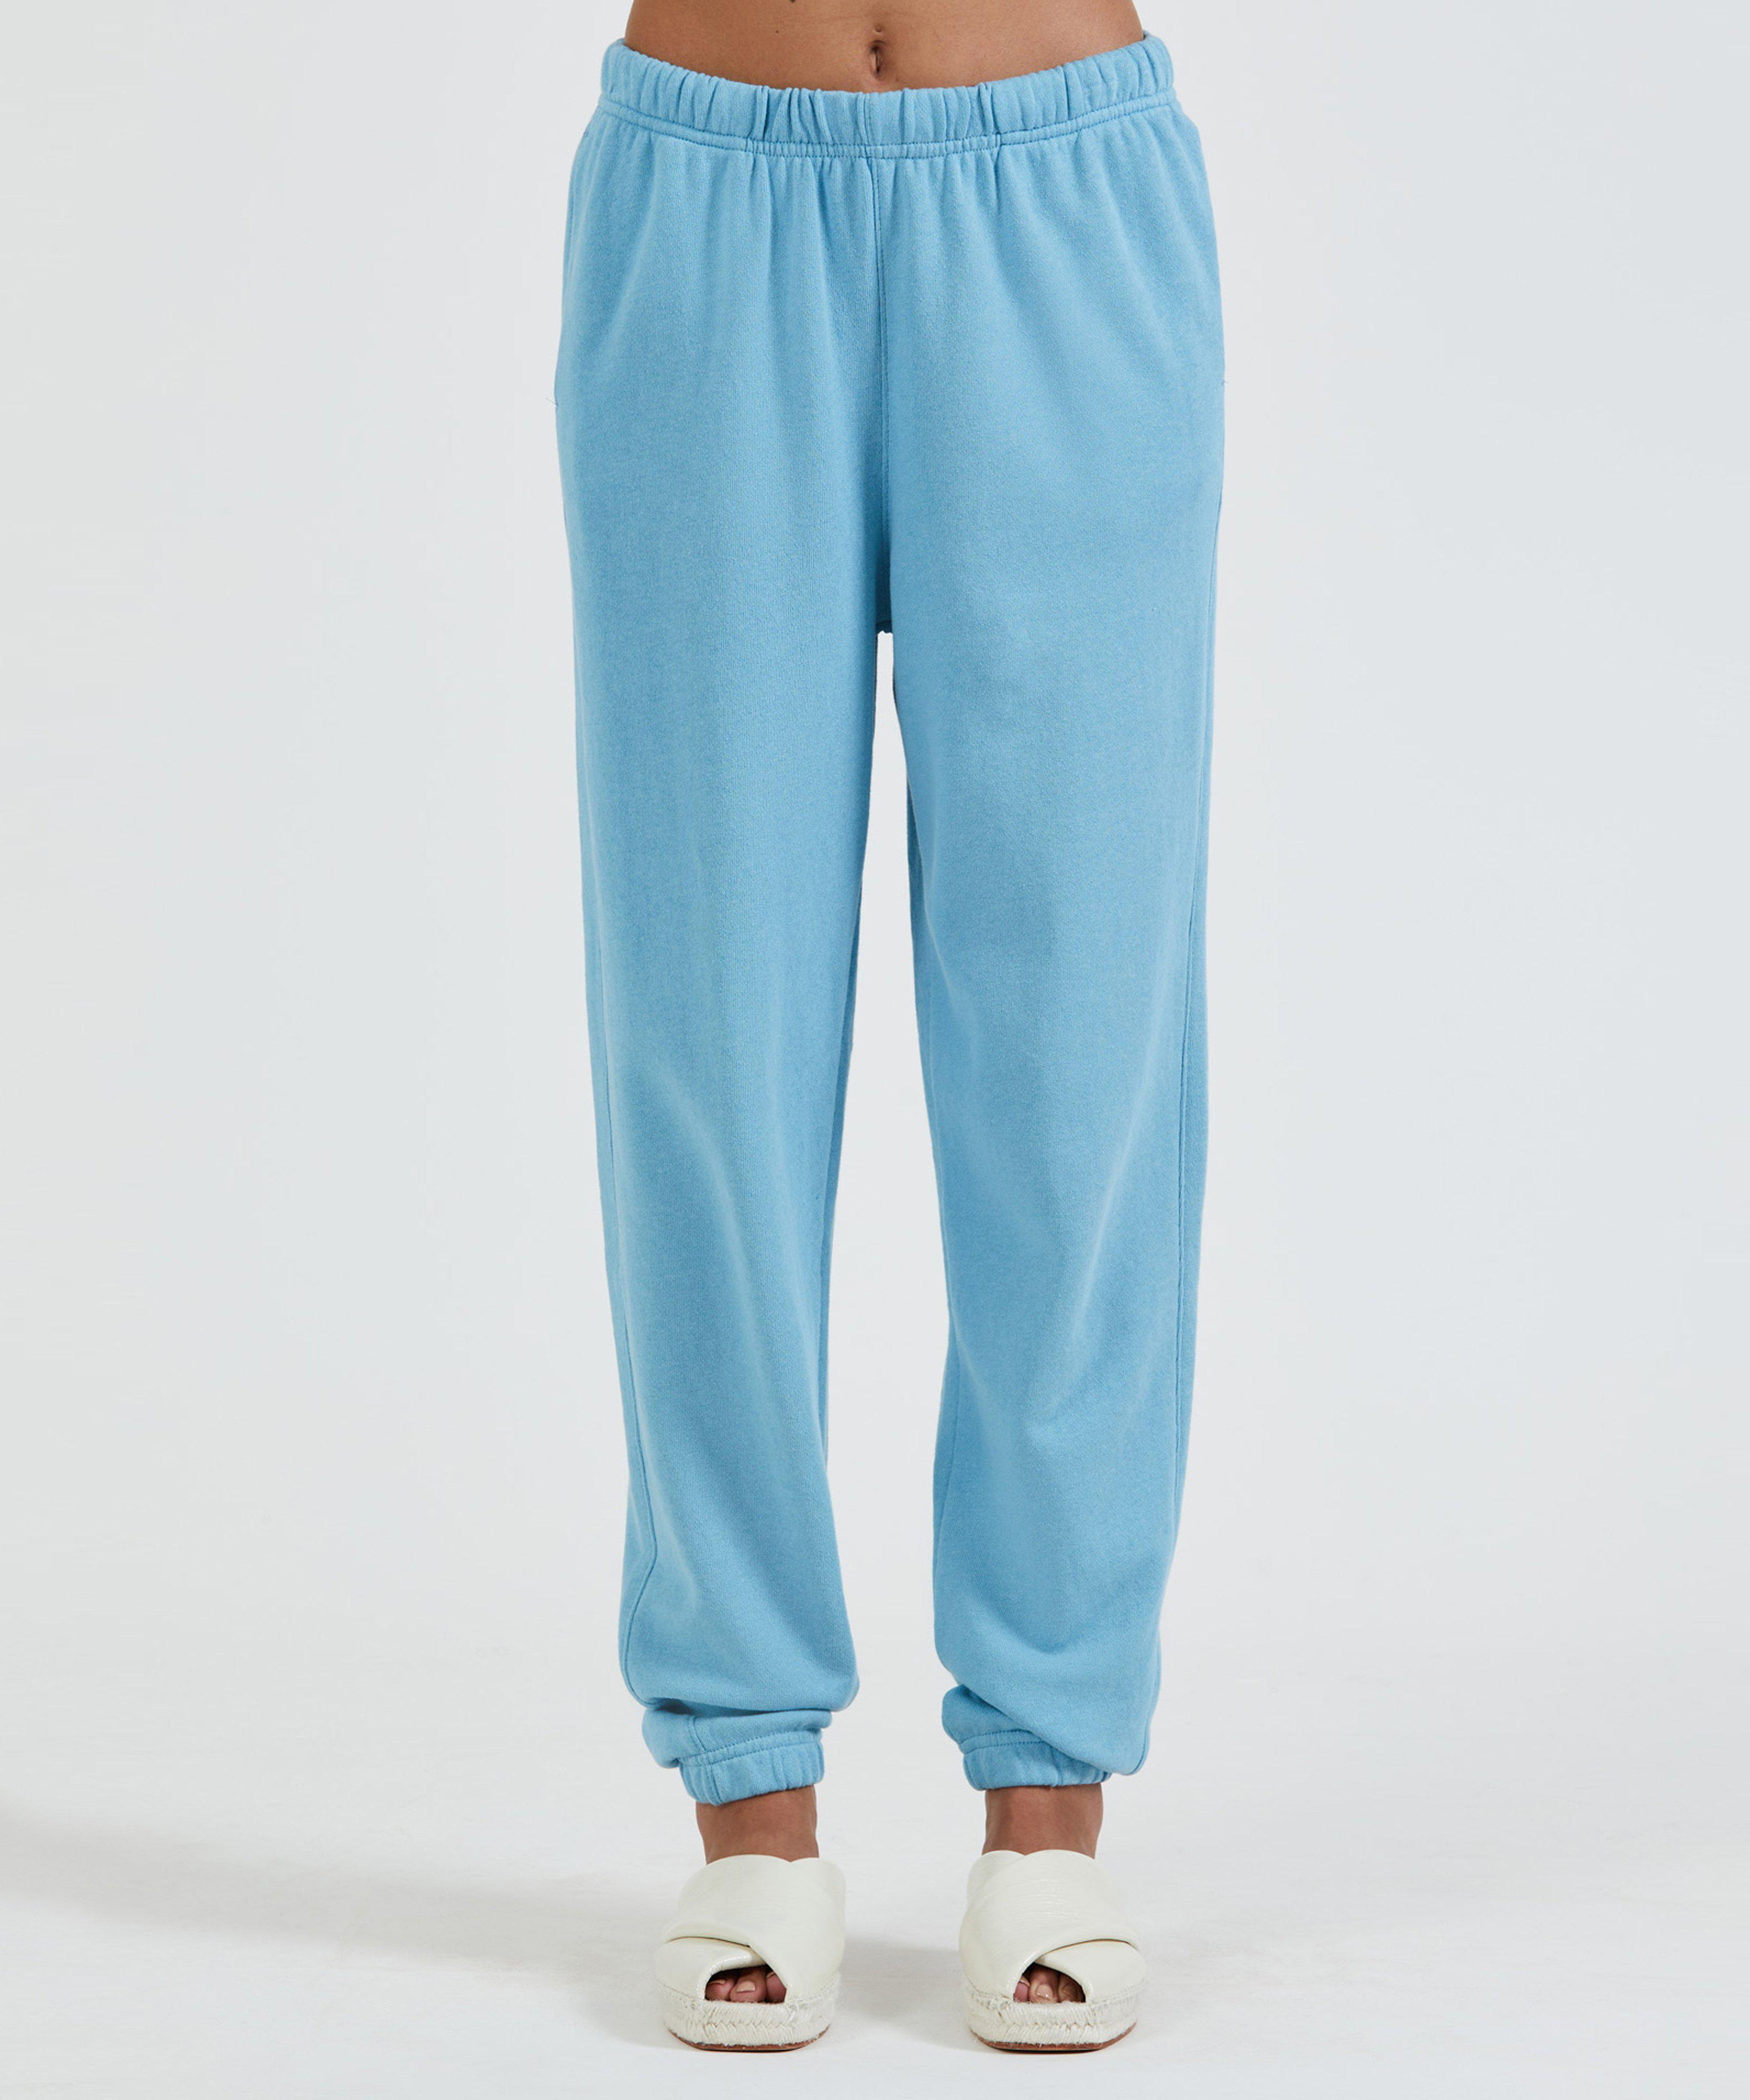 French Terry Pull-On Pant - Ocean Blue